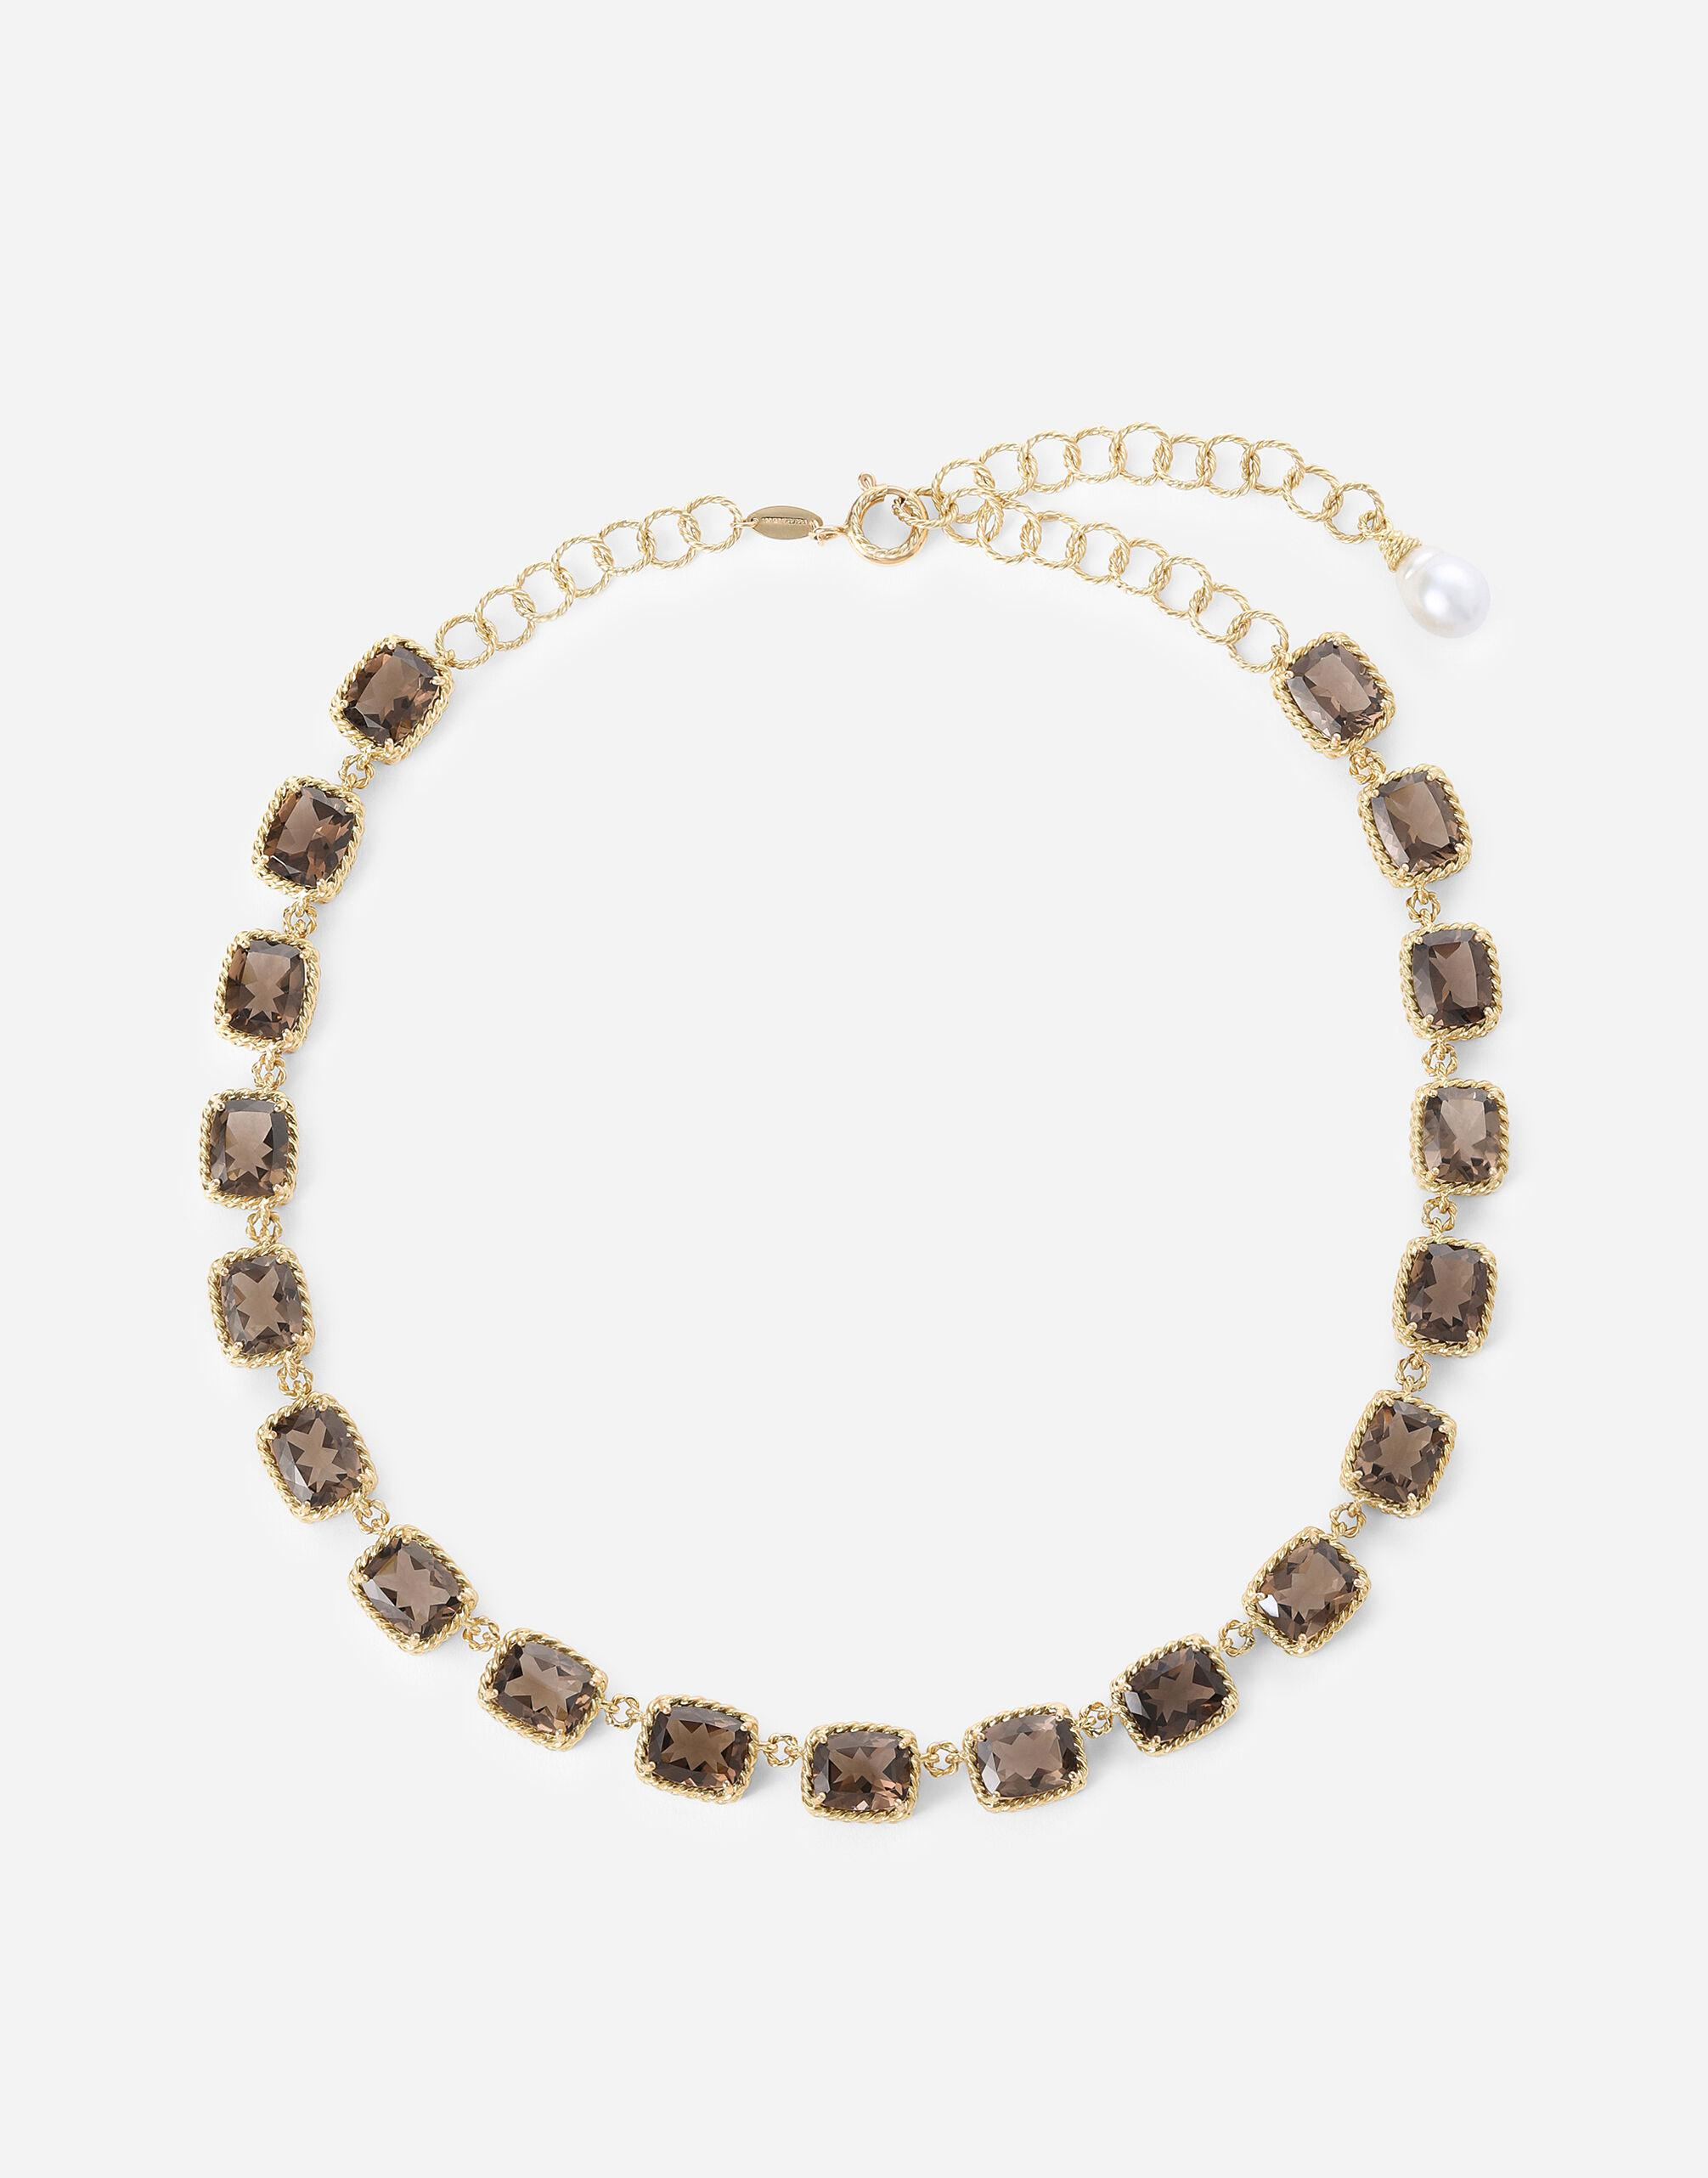 Anna necklace in yellow 18kt gold with smoky quartzes